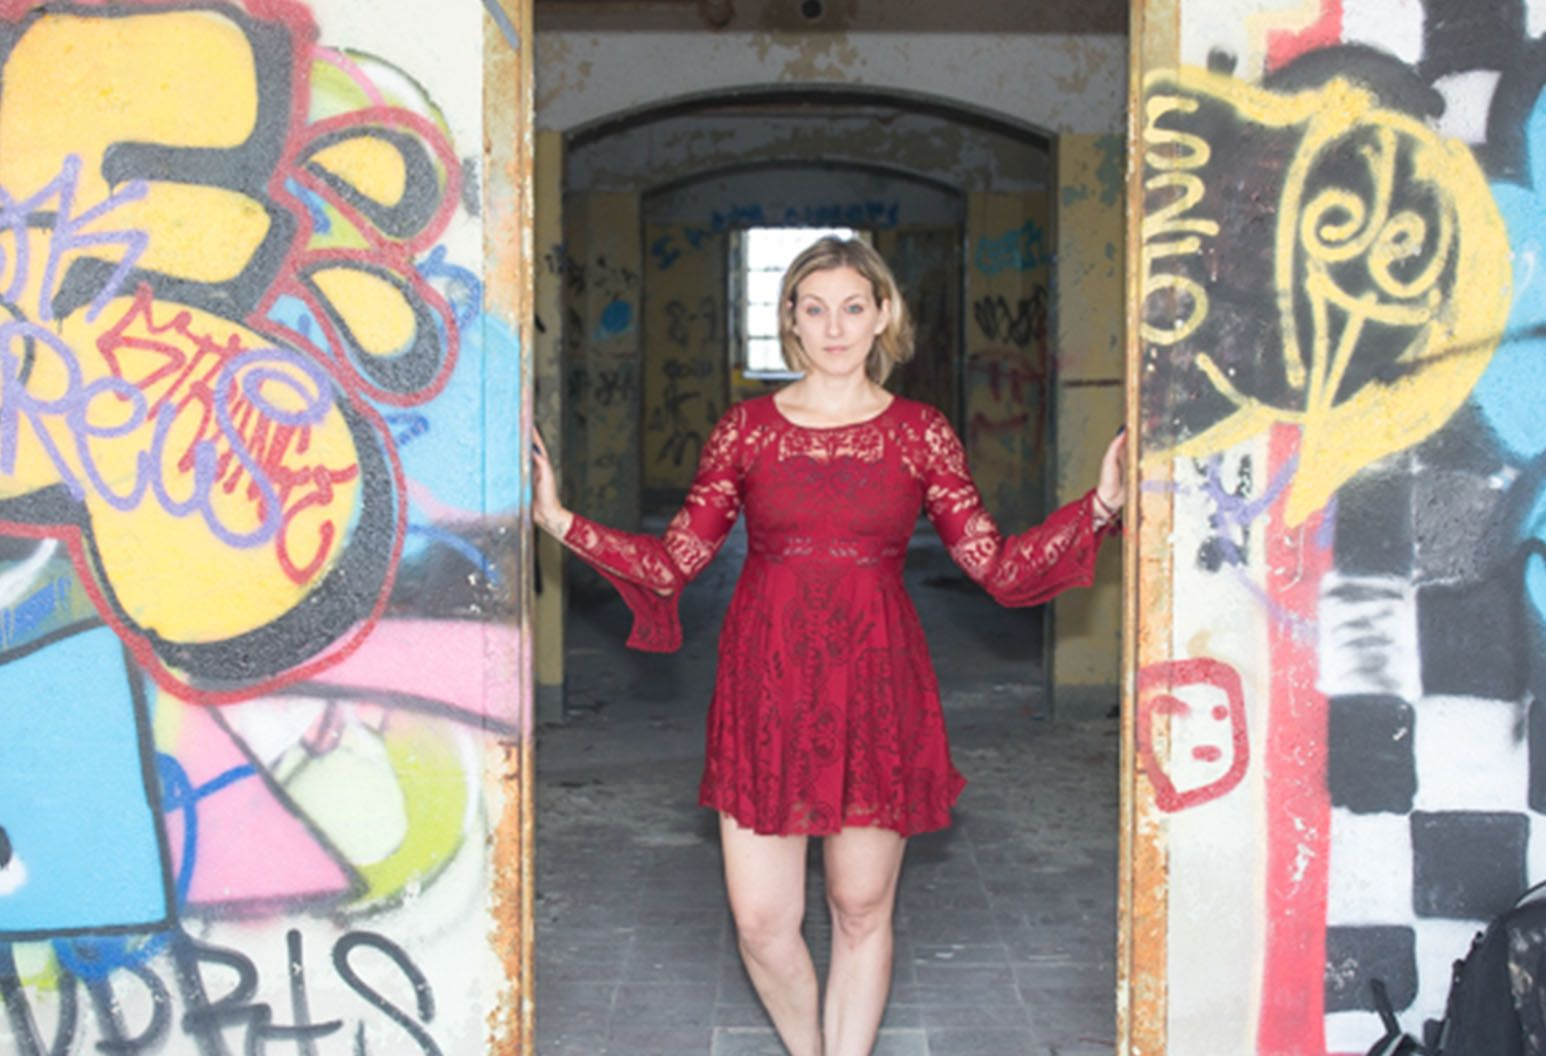 Woman standing in doorway of a building covered in graffiti